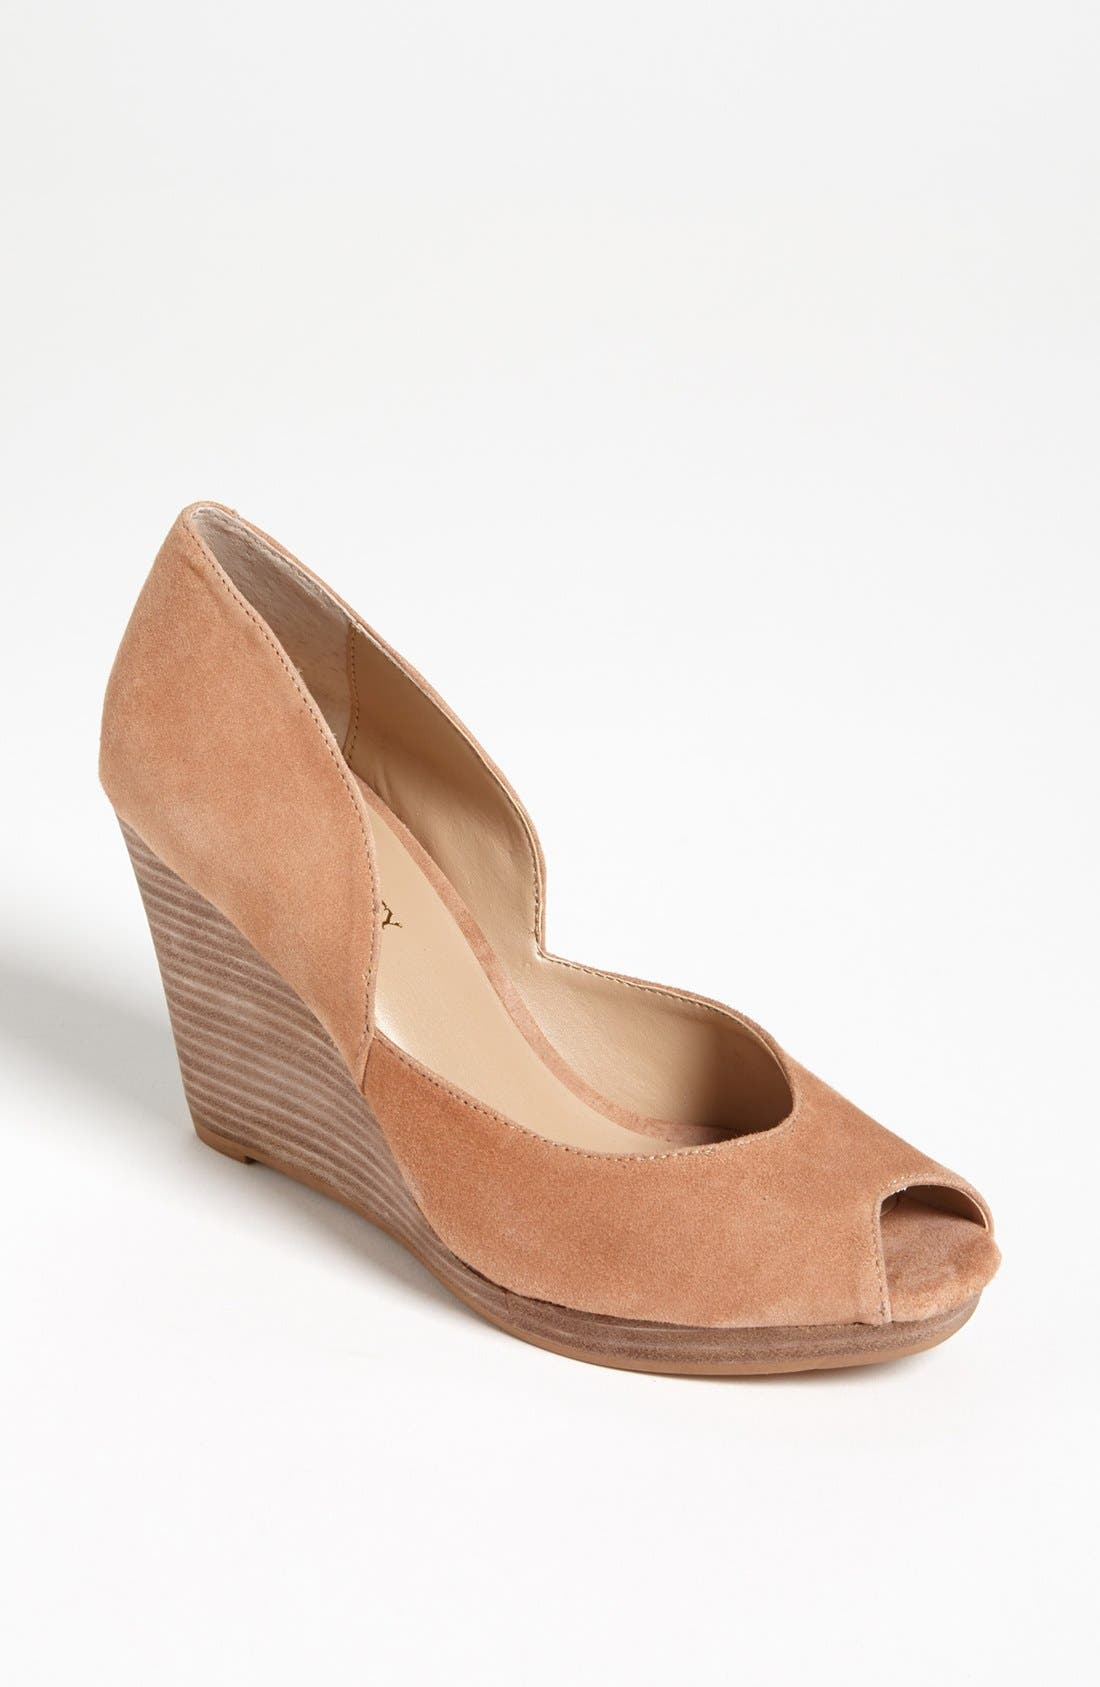 Alternate Image 1 Selected - Sole Society 'Kalani' Pump